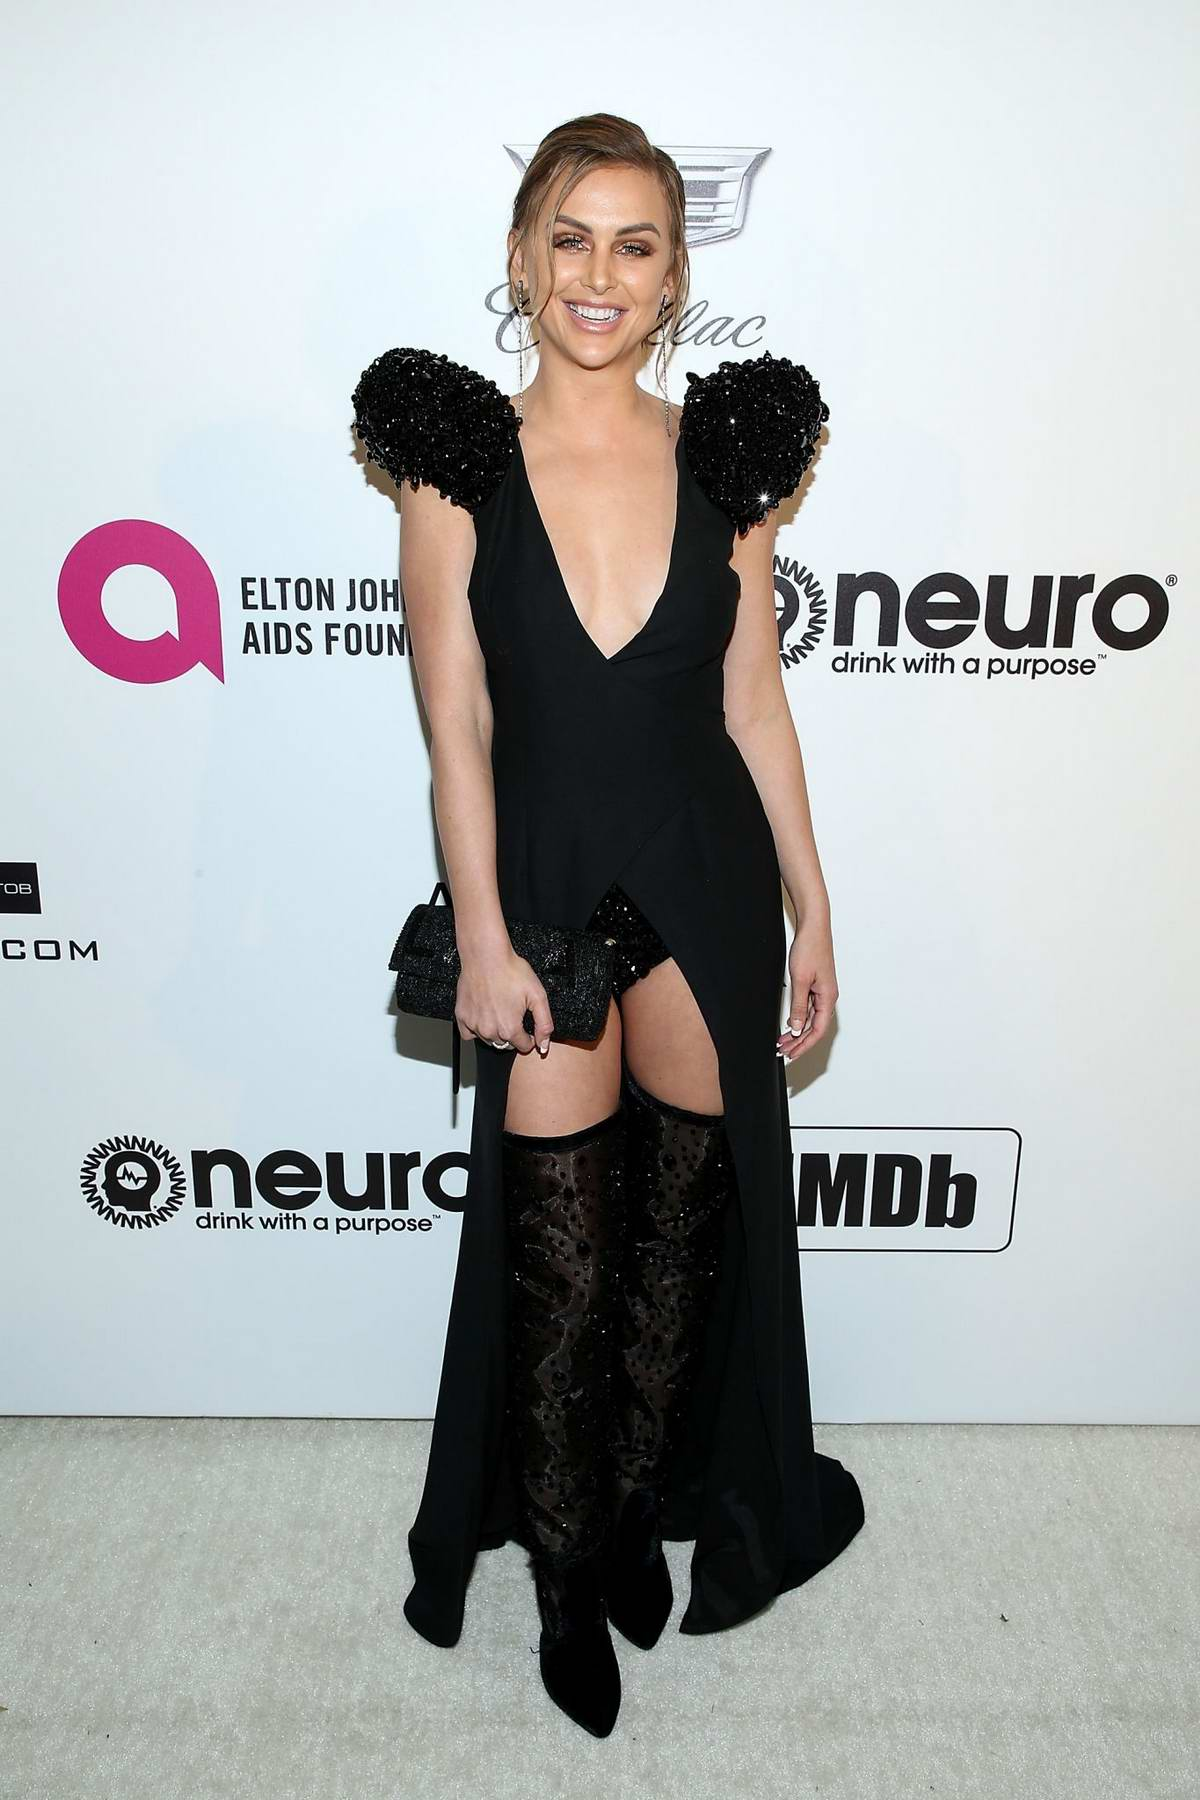 Lala Kent attends the 27th Annual Elton John AIDS Foundation Academy Awards Viewing Party in West Hollywood, Los Angeles